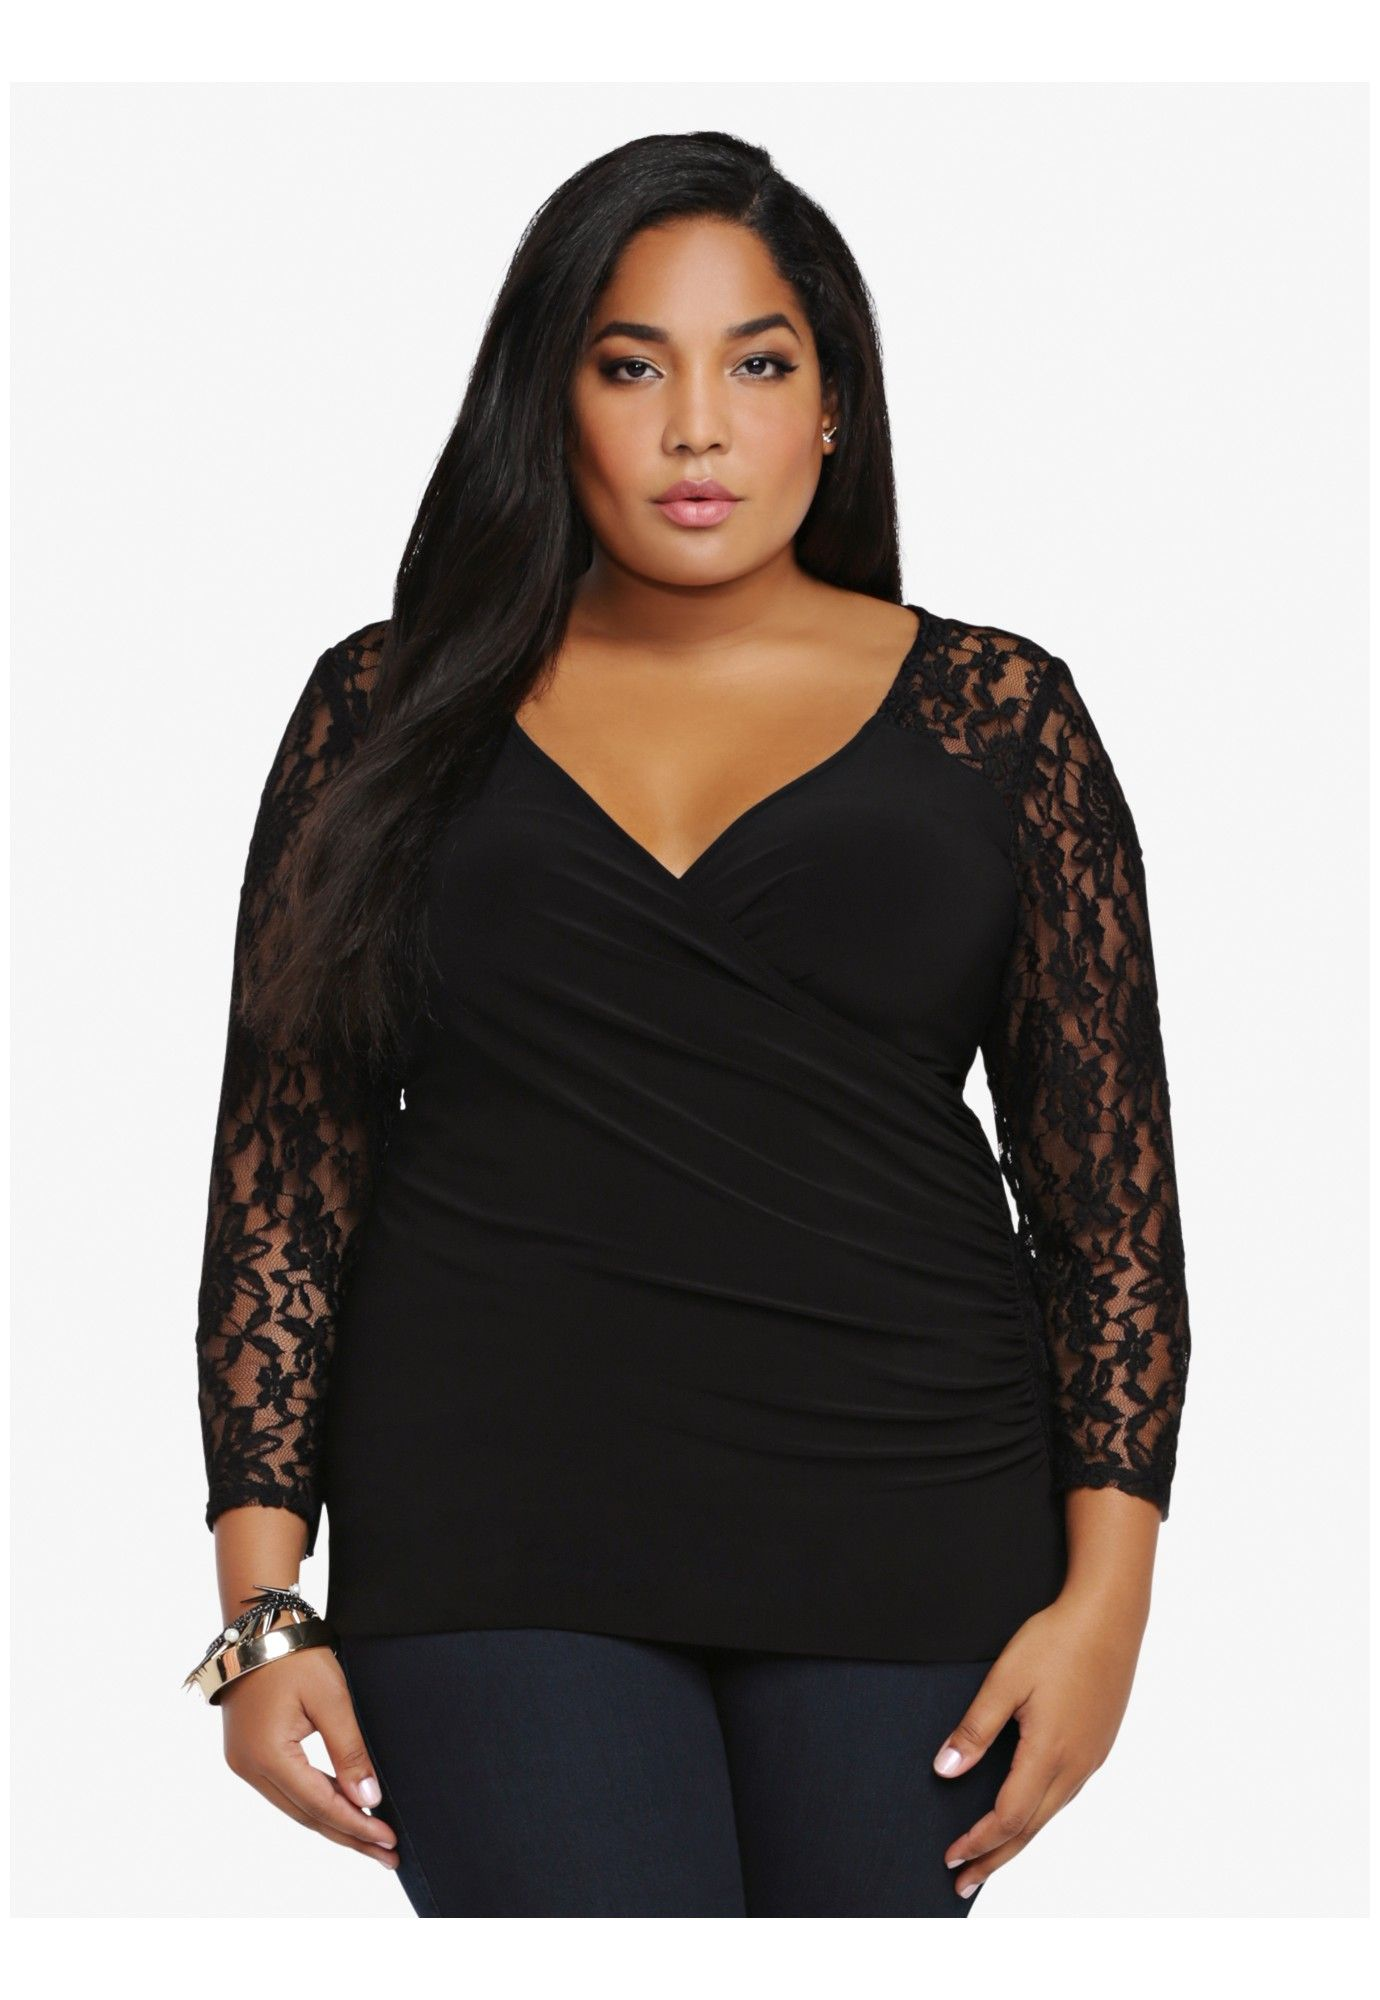 e60b46b6fd930 Look lovely in lace wearing this black plus size long-sleeve top.  tops   lookbook  fashion